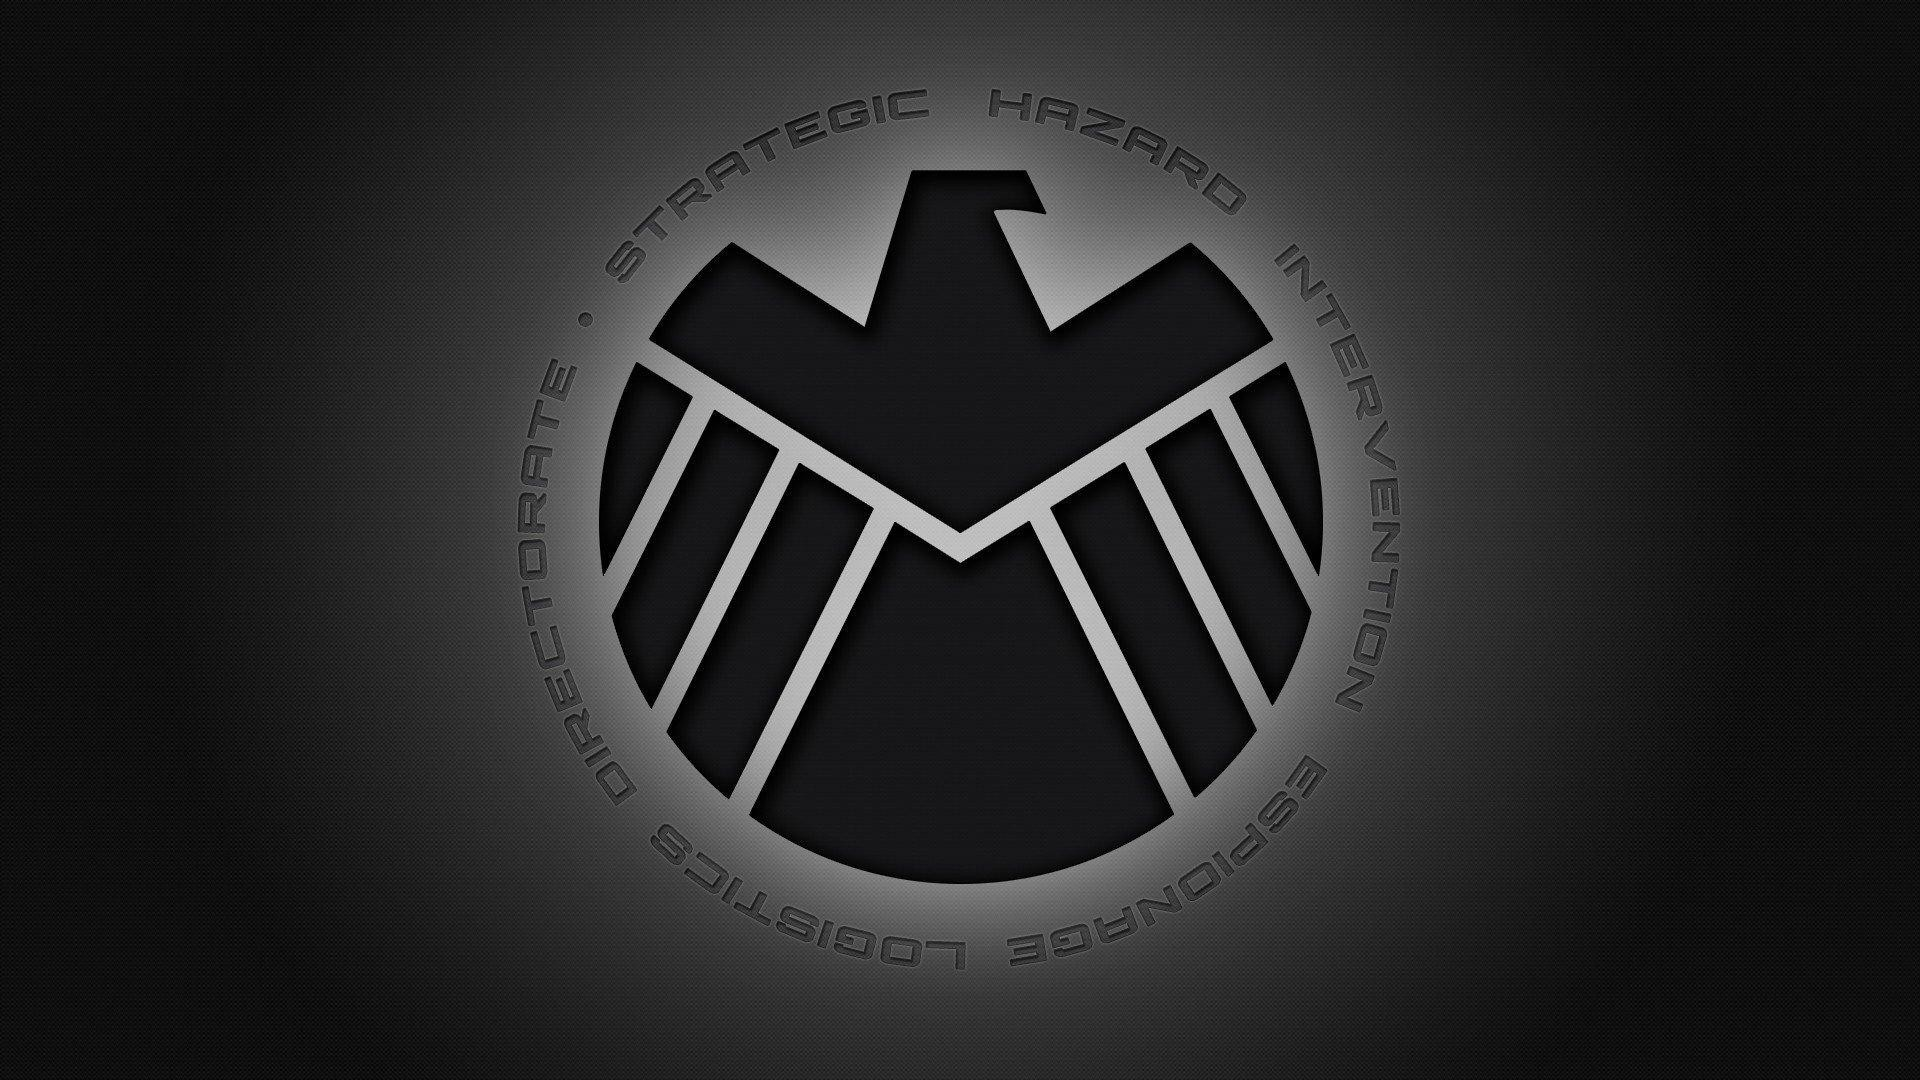 1920x1080 wallpaper.wiki-Images-Agents-Of-Shield-HD-PIC-